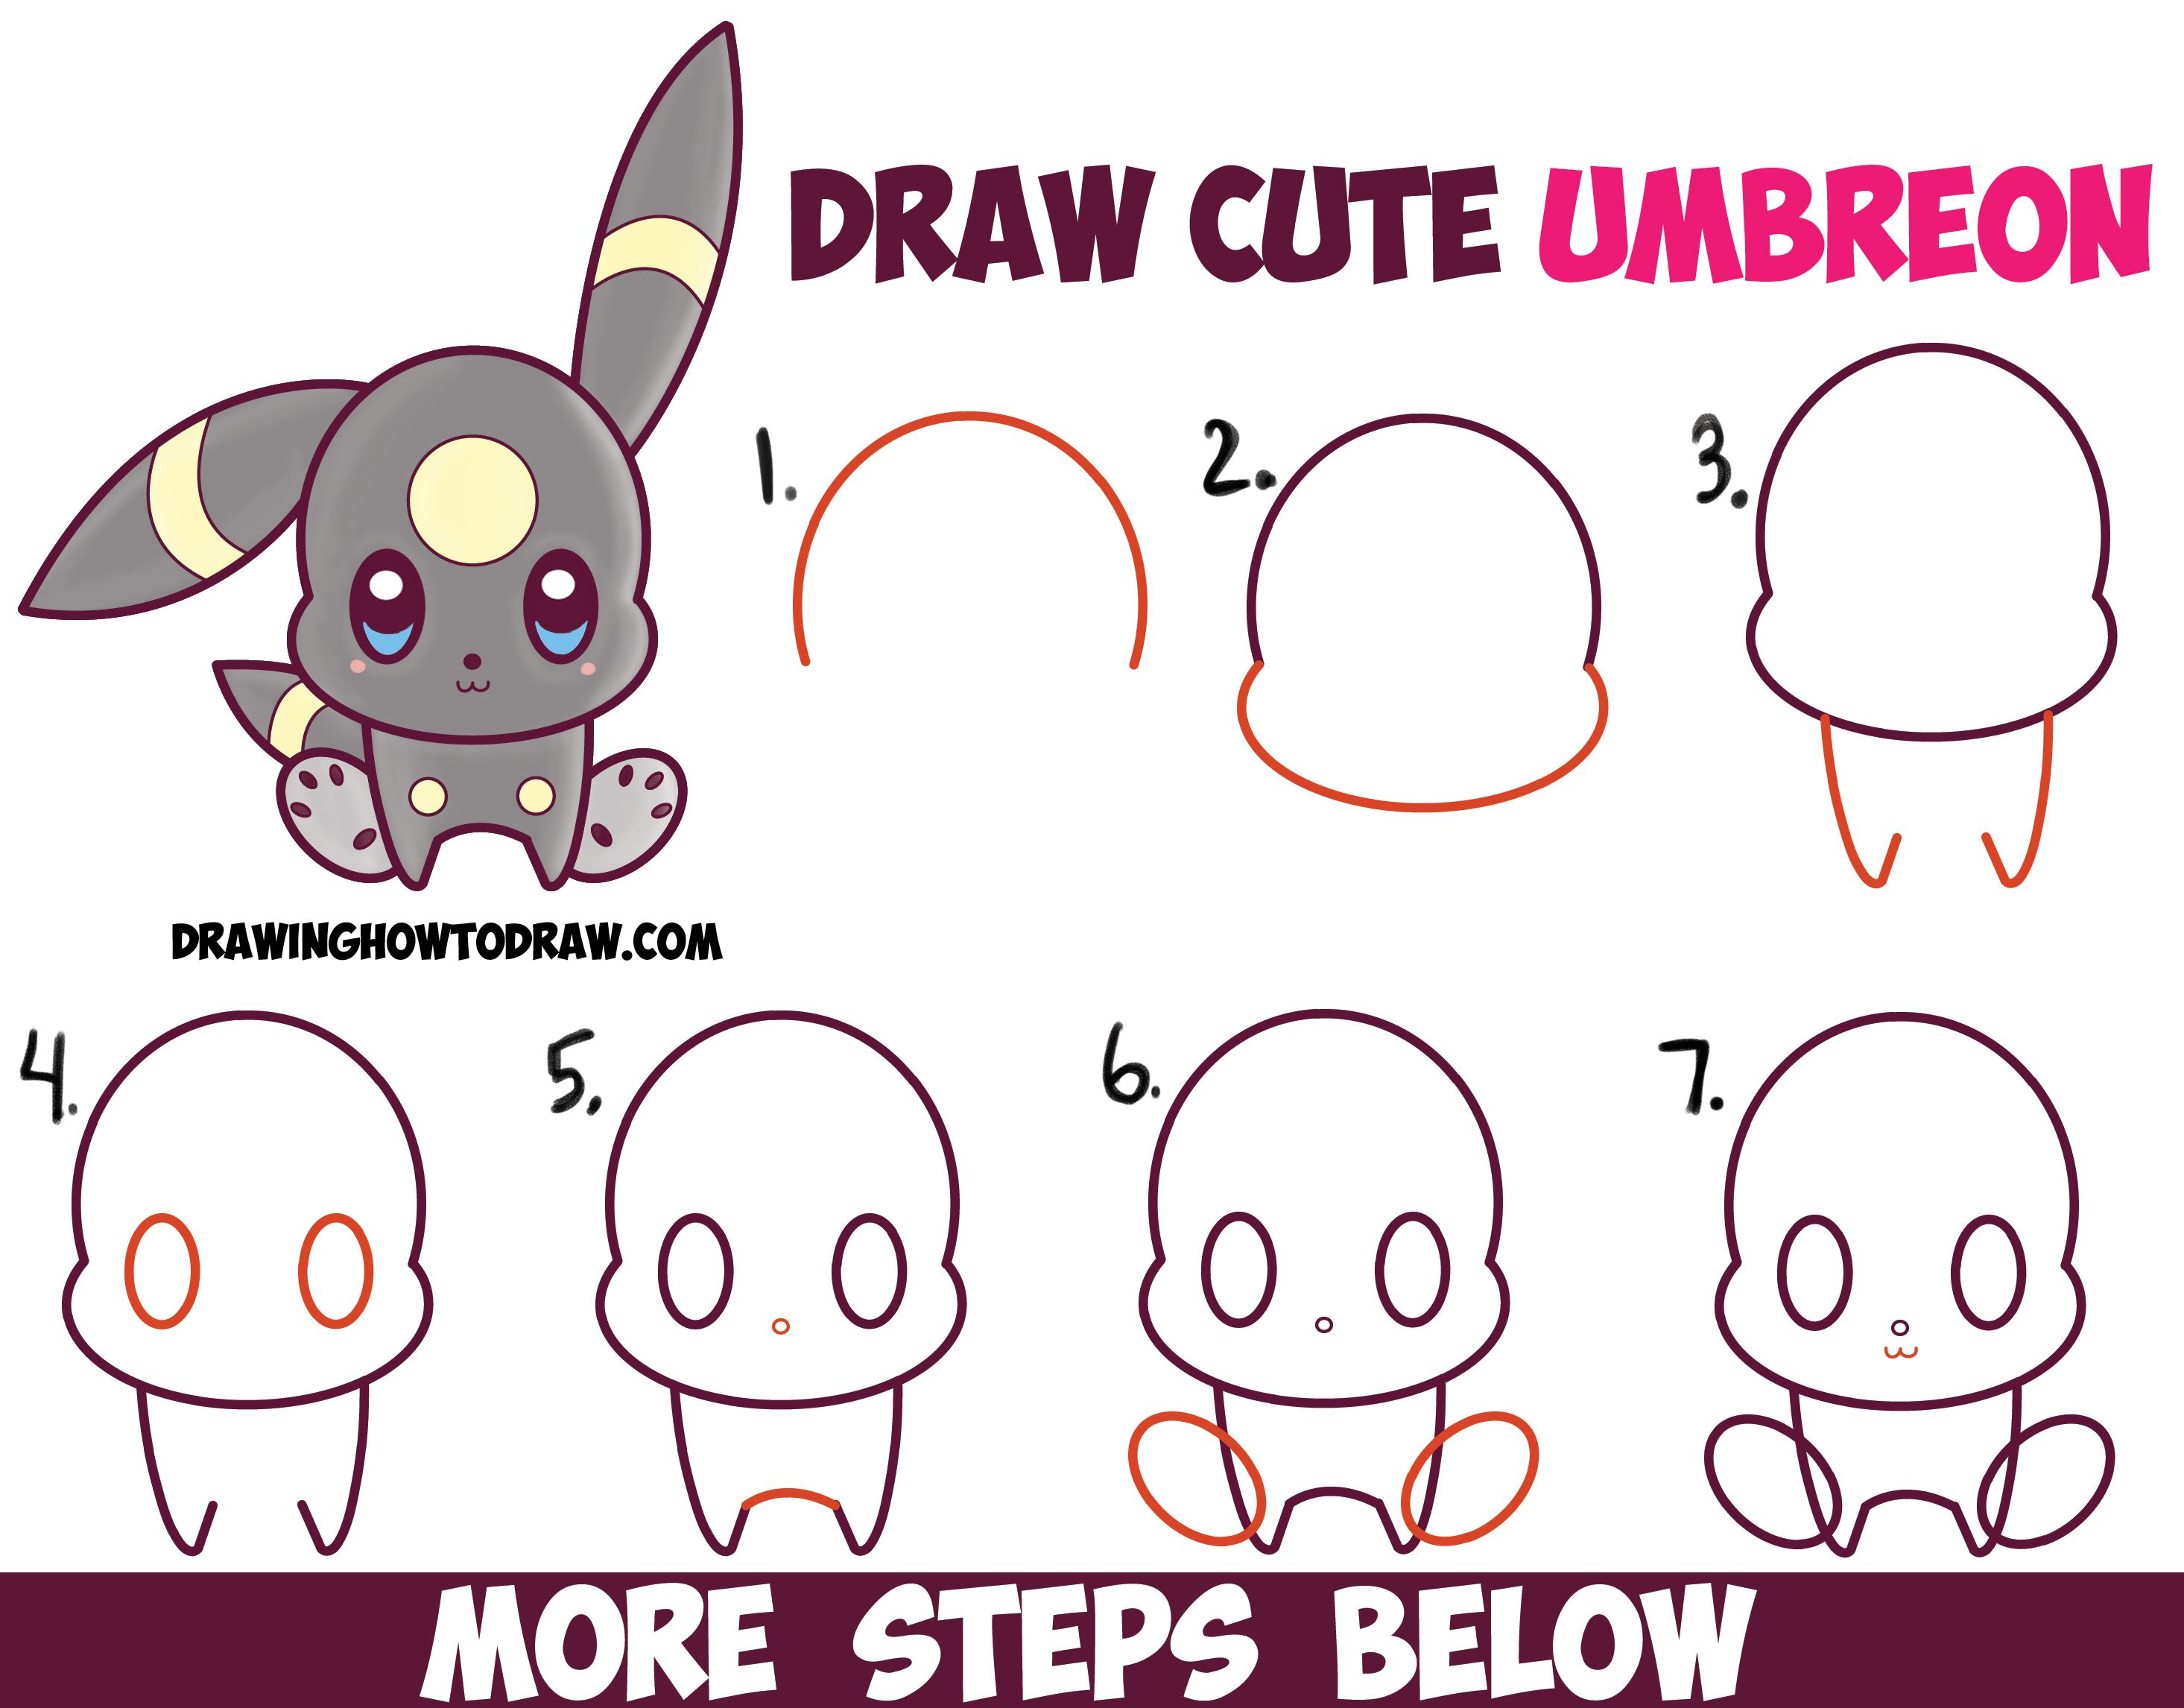 How To Draw Cute Kawaii Chibi Umbreon From Pokemon Easy Step By Drawing Tutorial For Kids